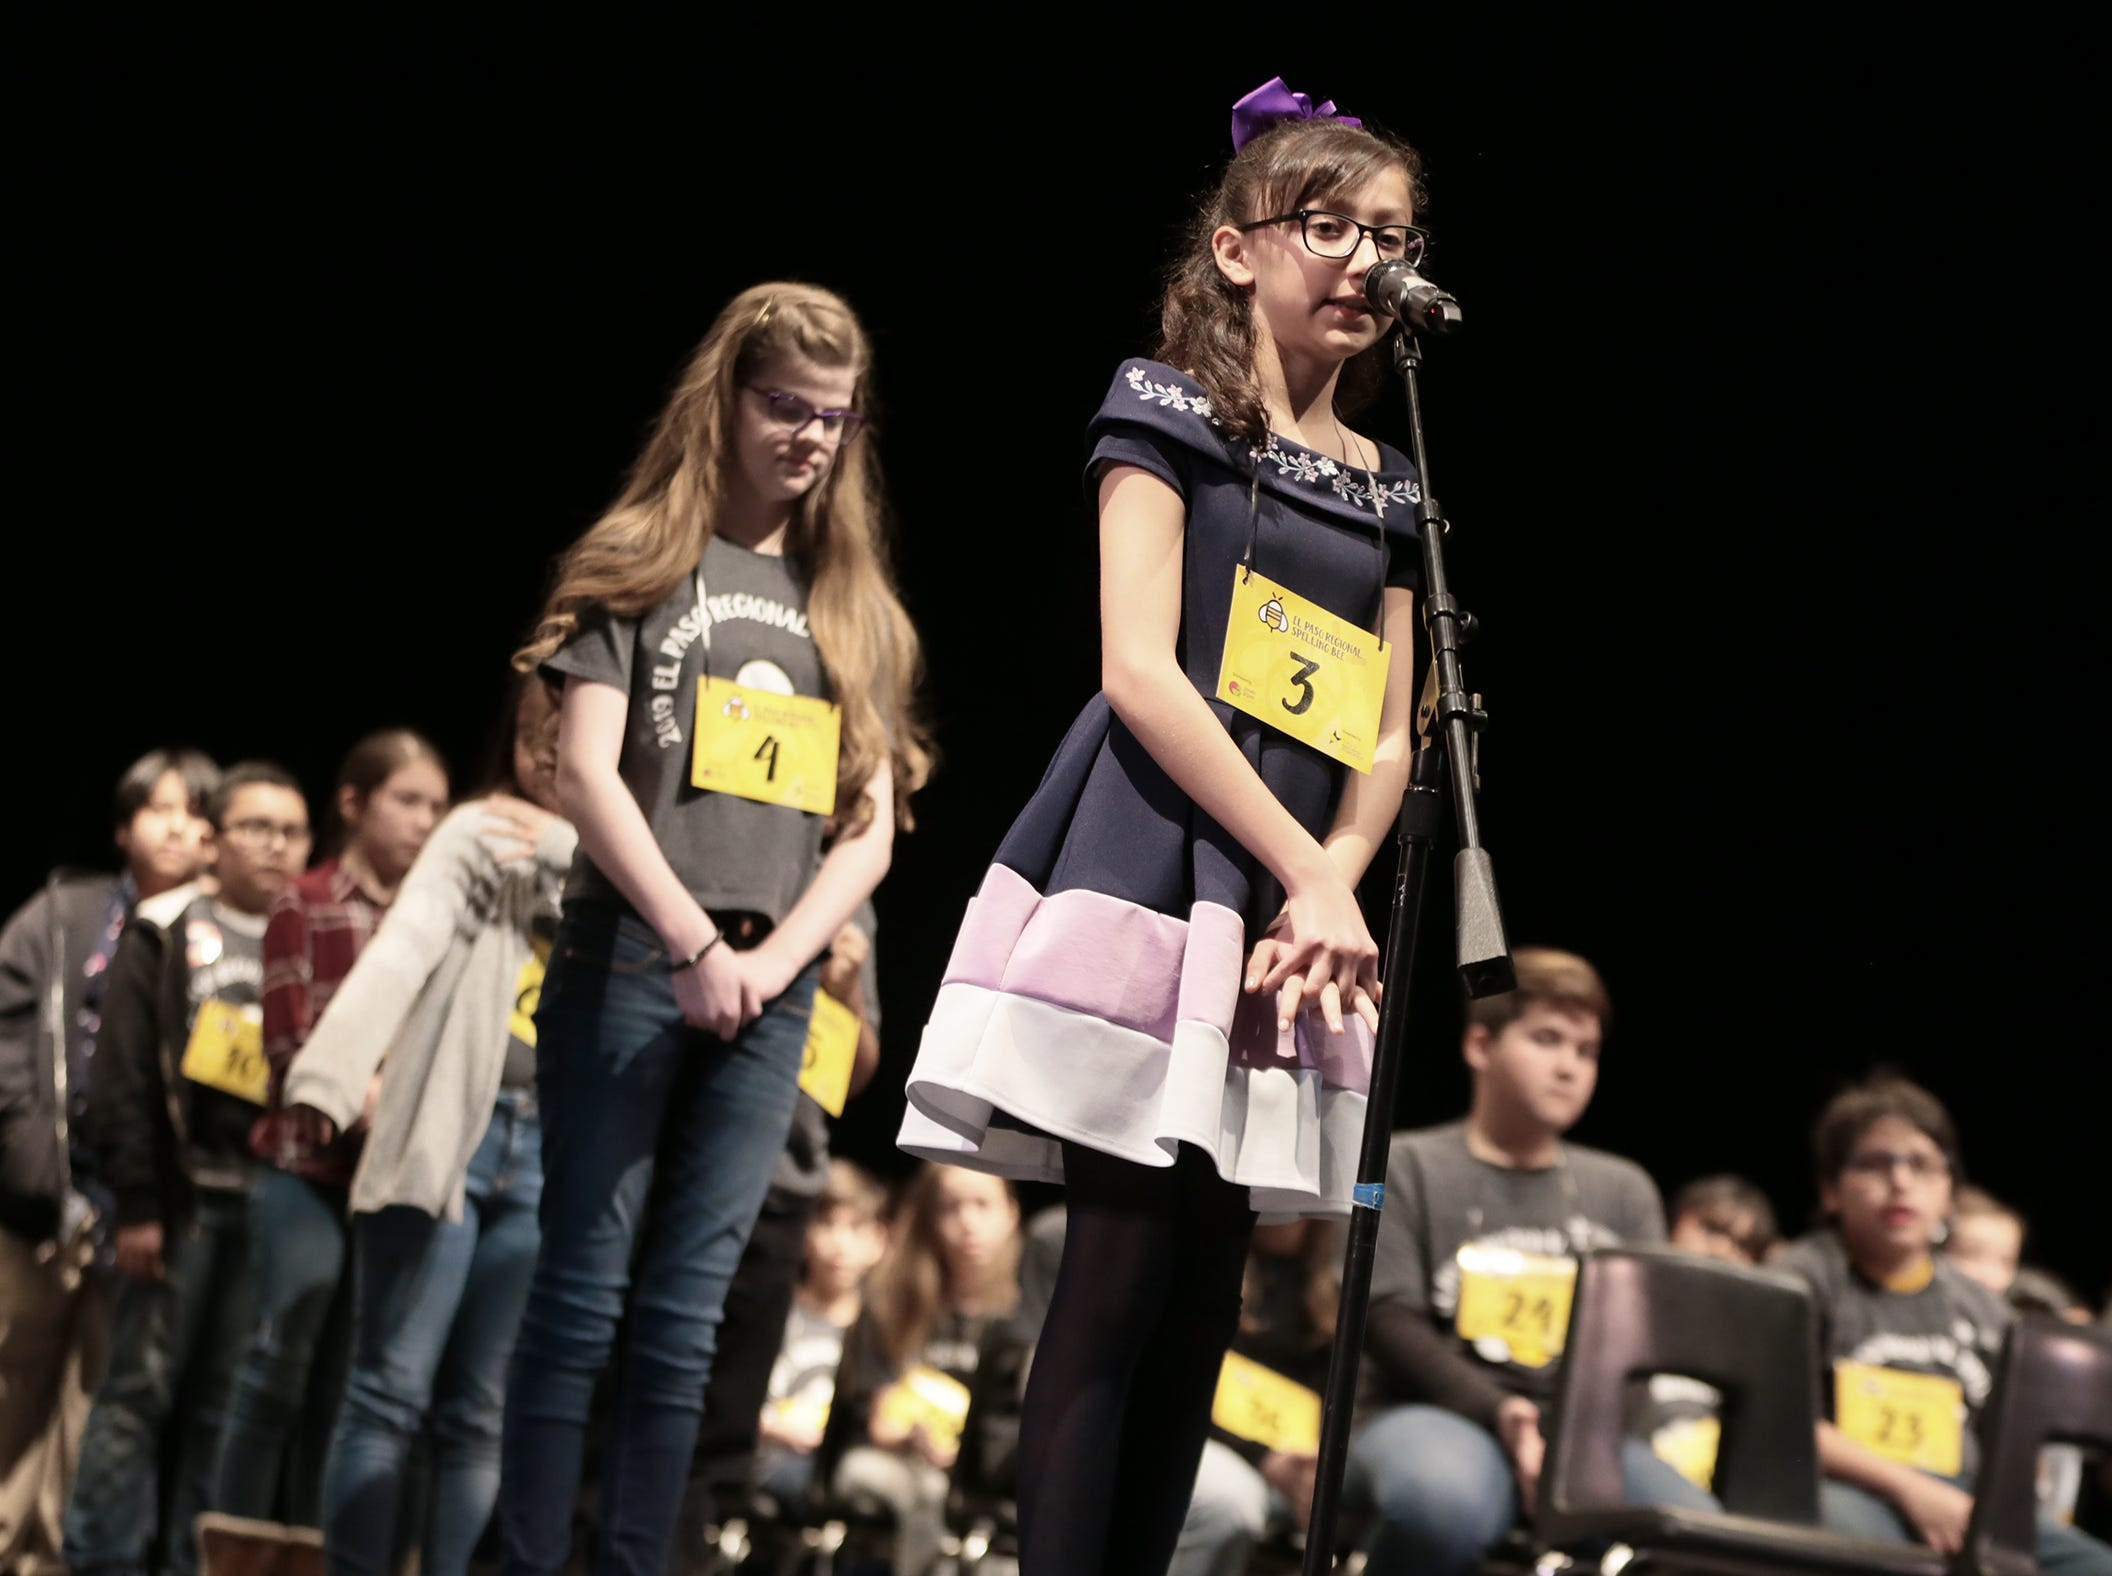 Canutillo Middle School's Alina Banda spells her word at the 2019 El Paso Regional Spelling Bee Friday at Bowie High School.